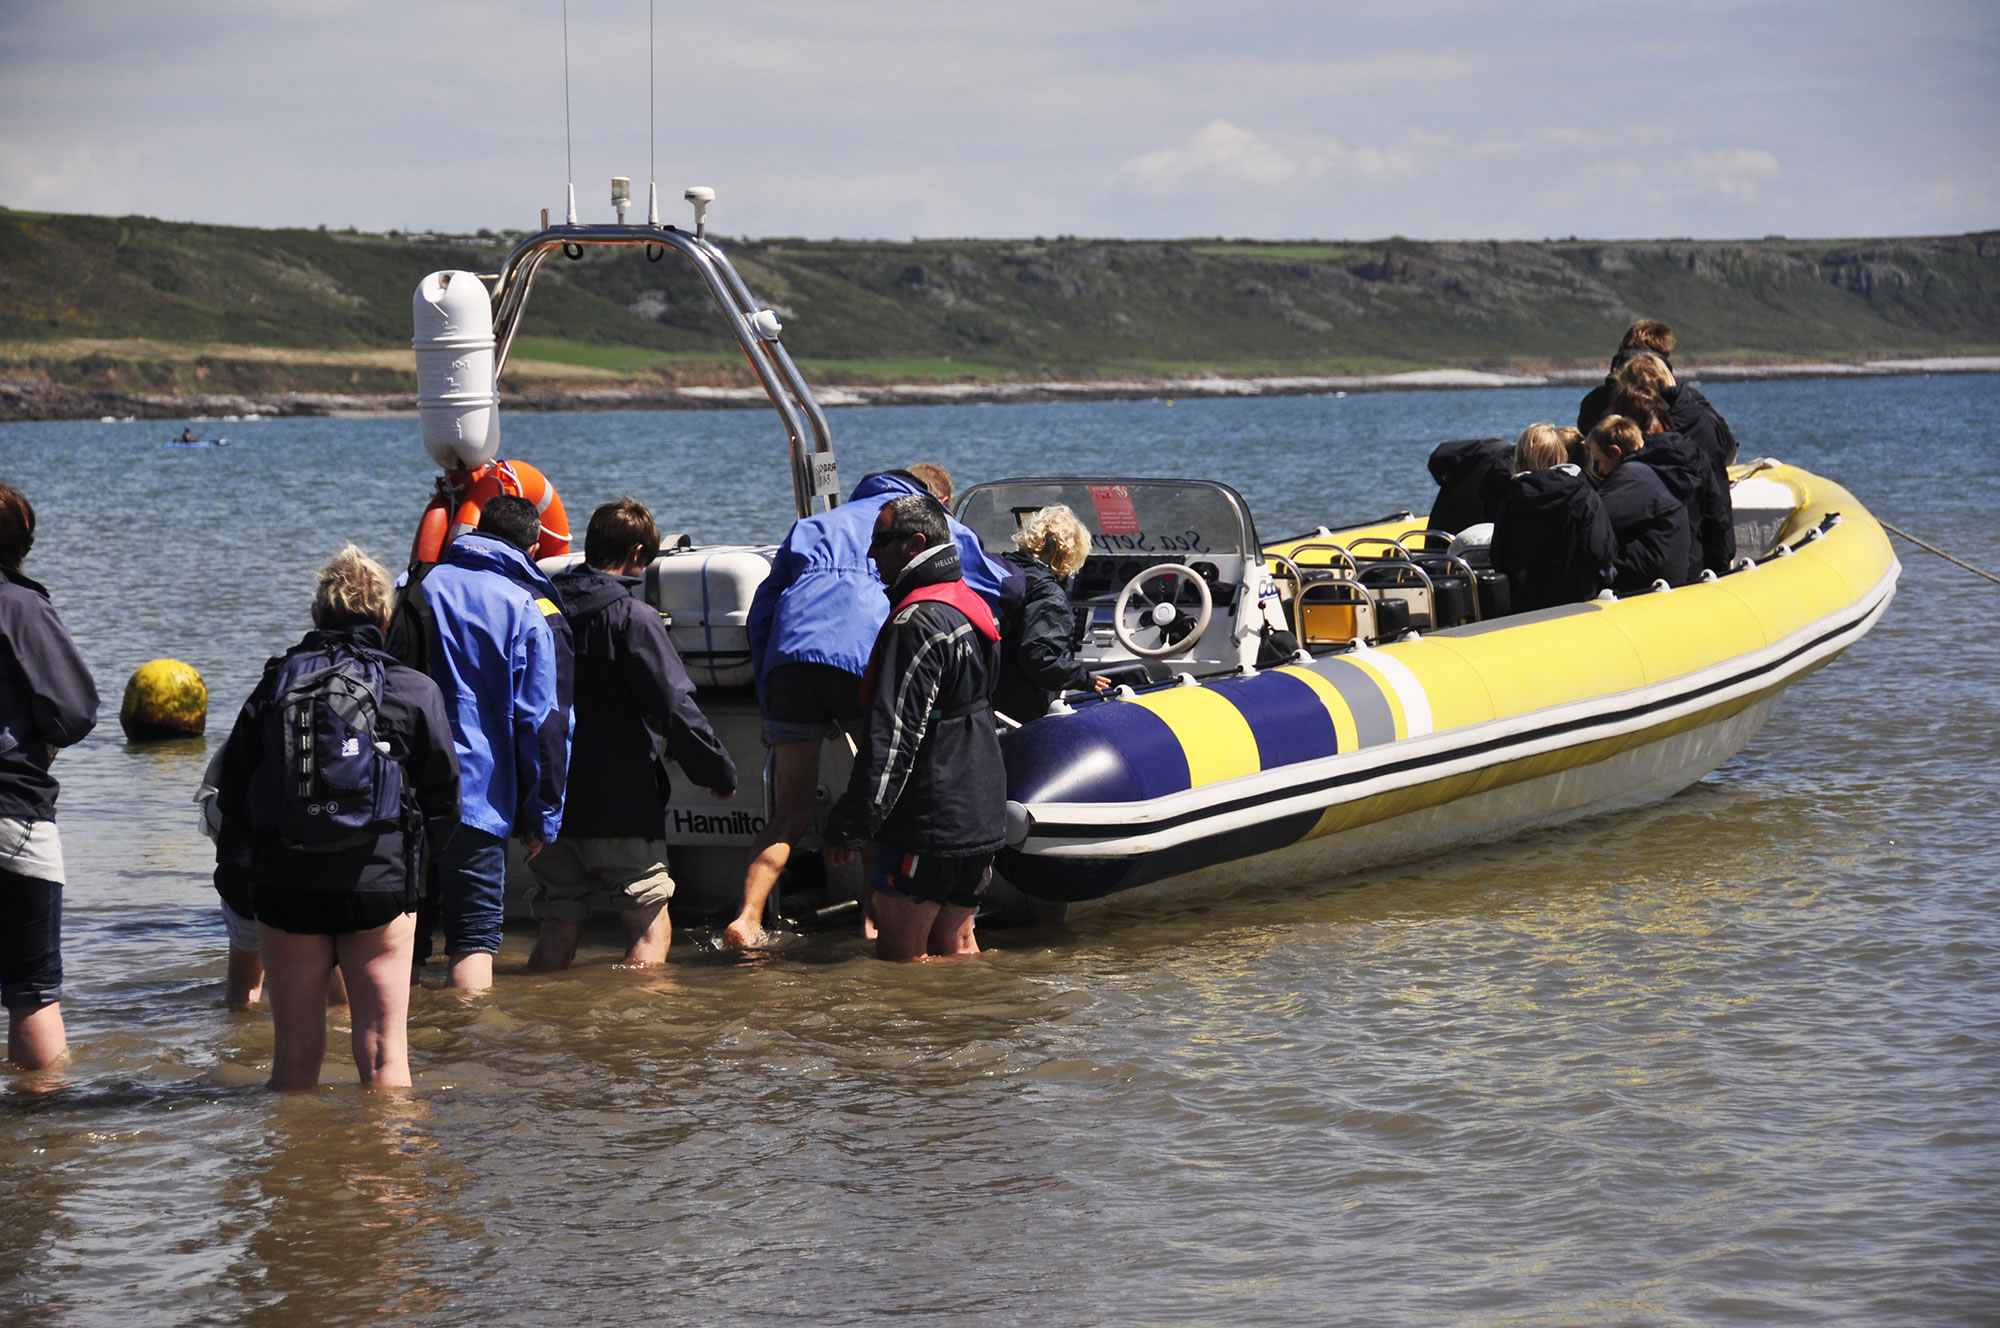 Passengers boarding the boat at Oxwich